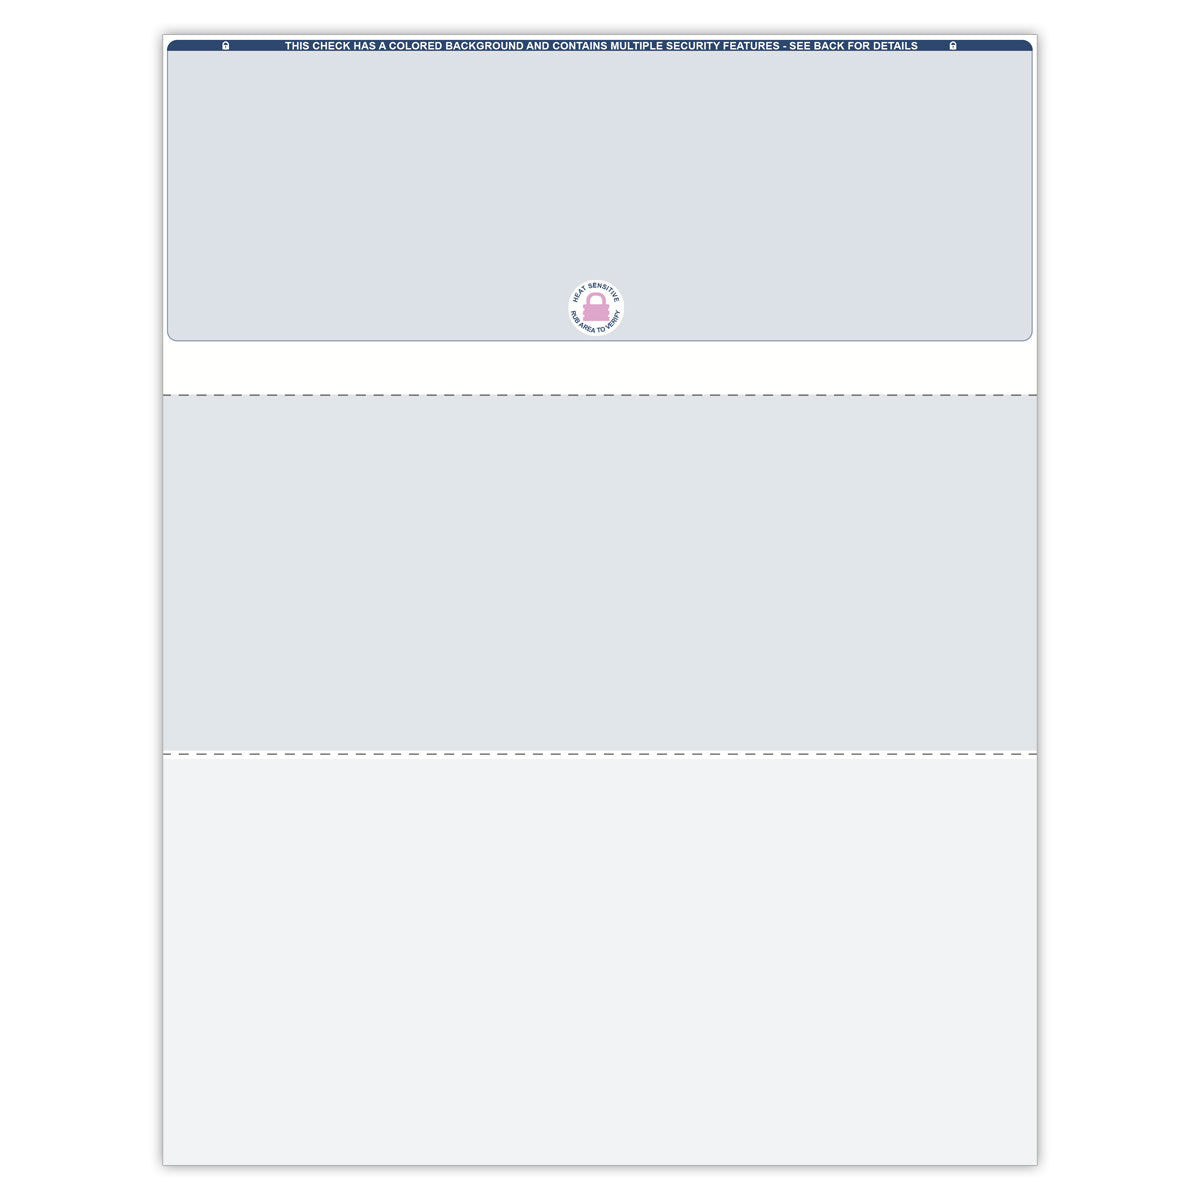 Top Format Blank Check Paper - Check Depot